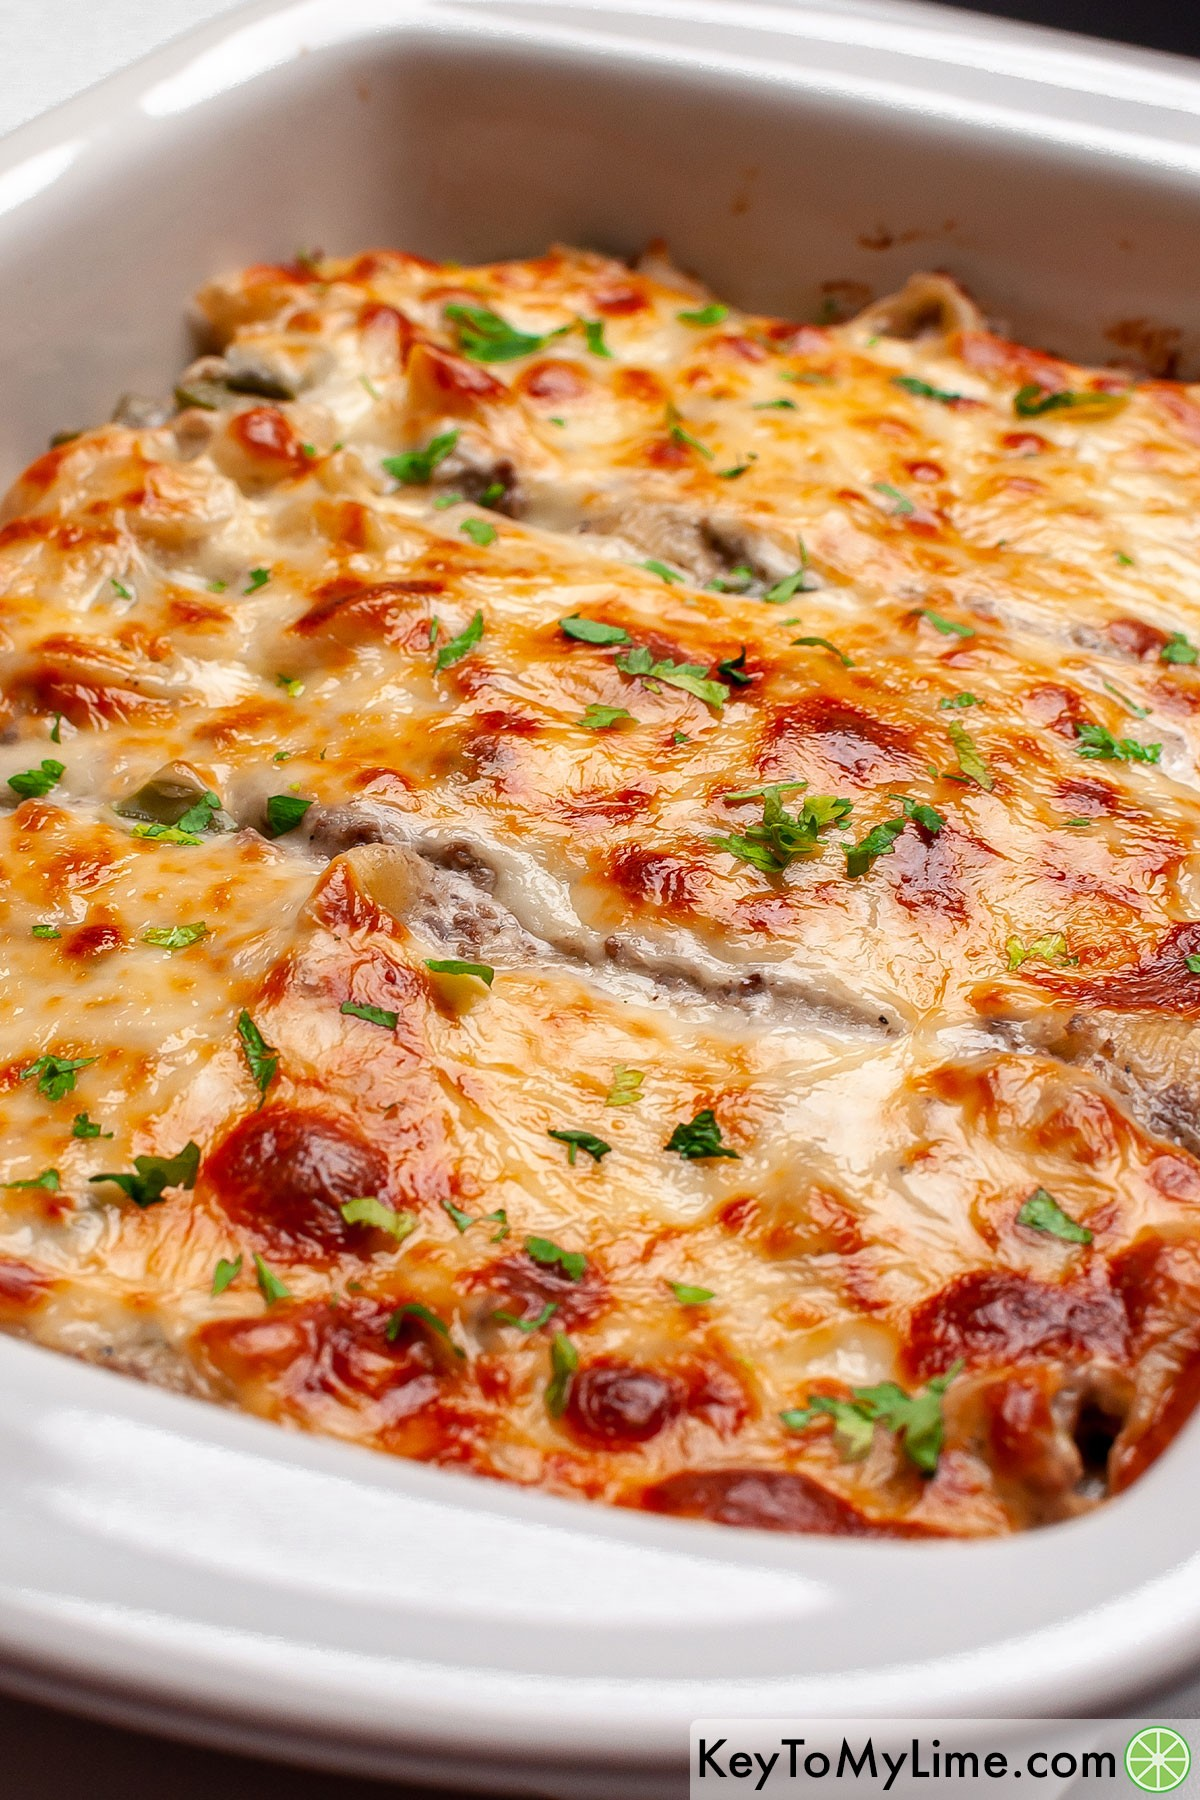 A cheesy Philly cheesesteak casserole in a white baking dish.